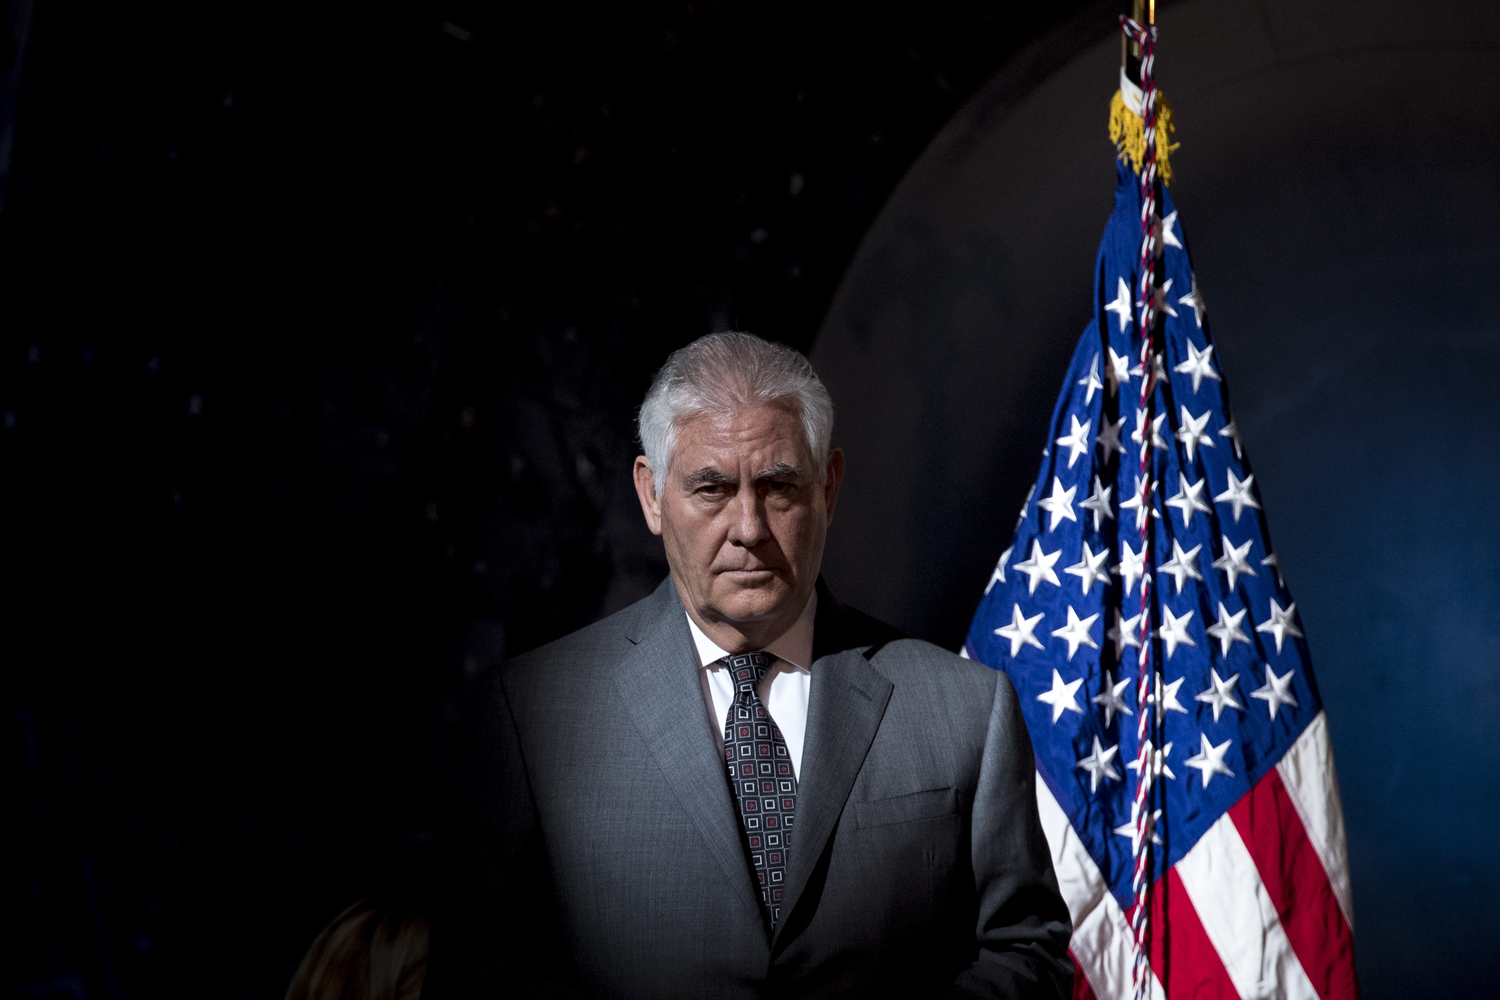 Secretary of State Rex Tillerson arrives for the first meeting of the National Space Council first meeting at the Steven F. Udvar-Hazy Center, Thursday, Oct. 5, 2017 in Chantilly, Va. (Andrew Harnik/AP)